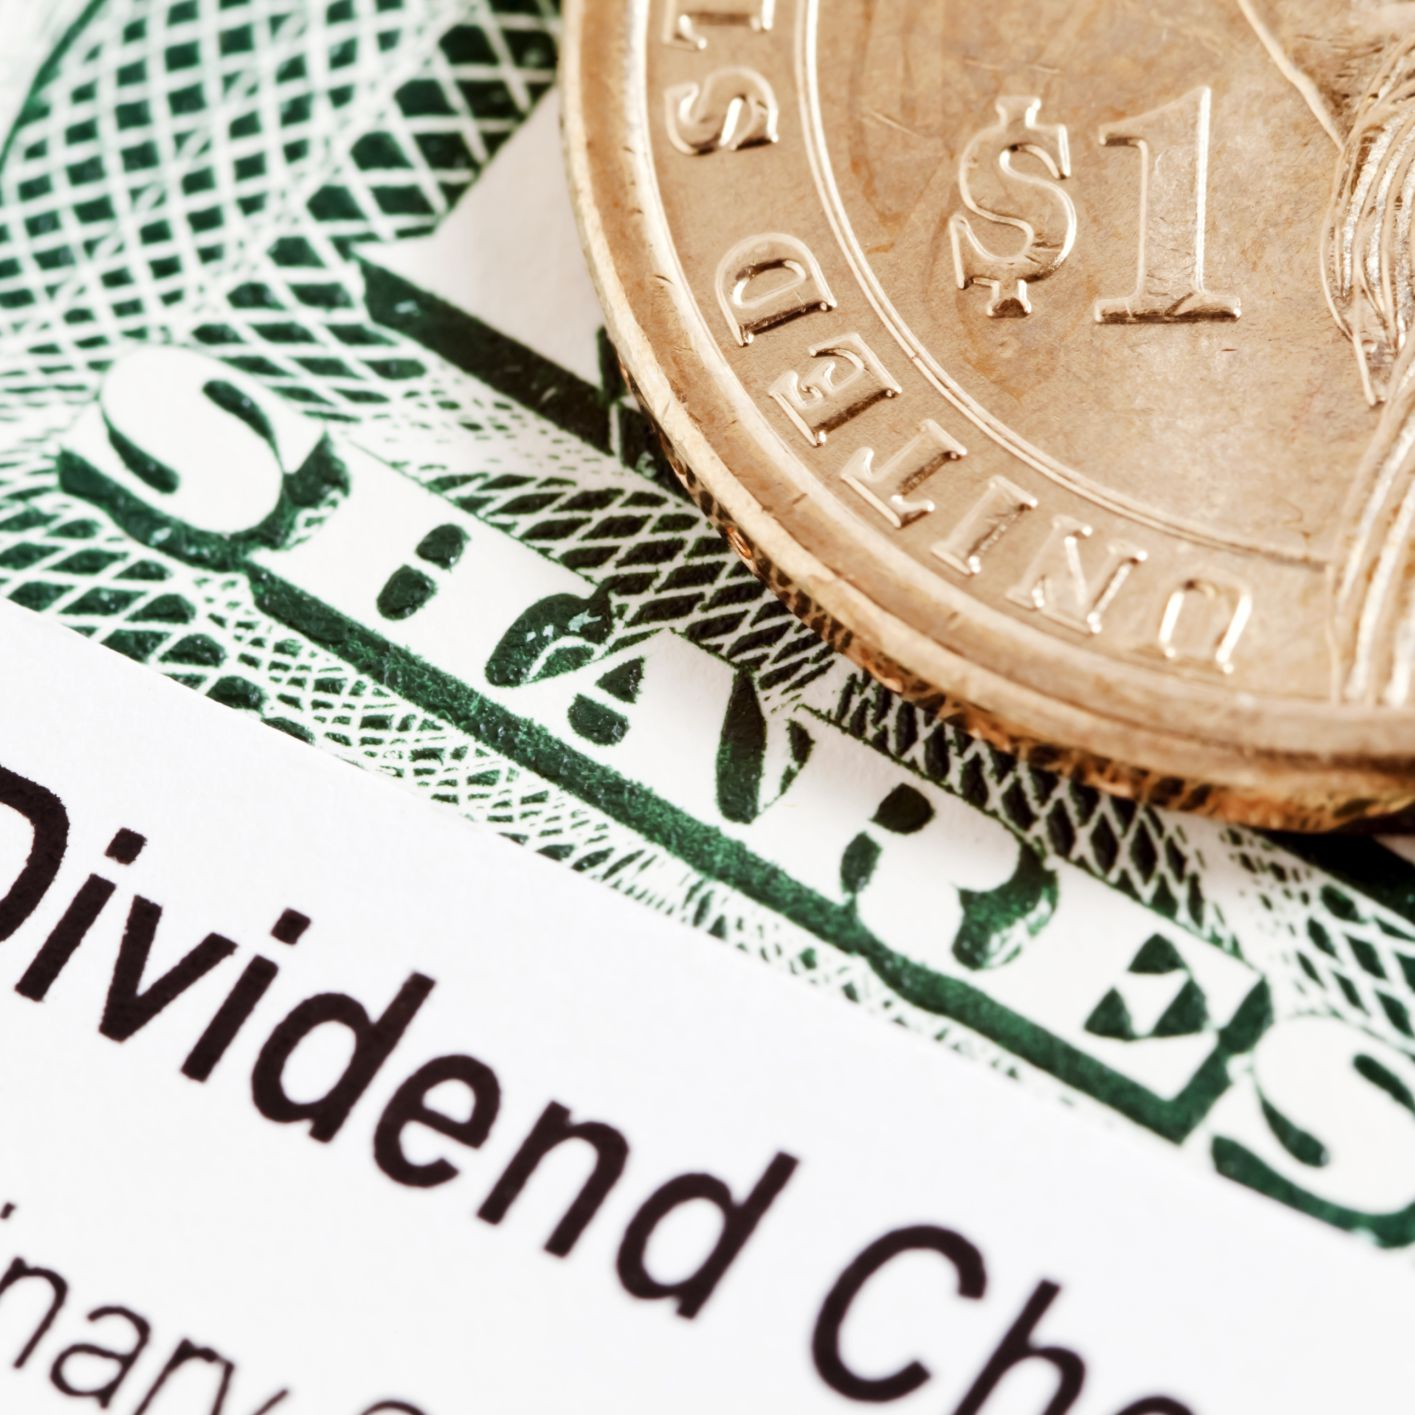 Reporting Dividends on Your Tax Return—How Much Tax Will You Pay?